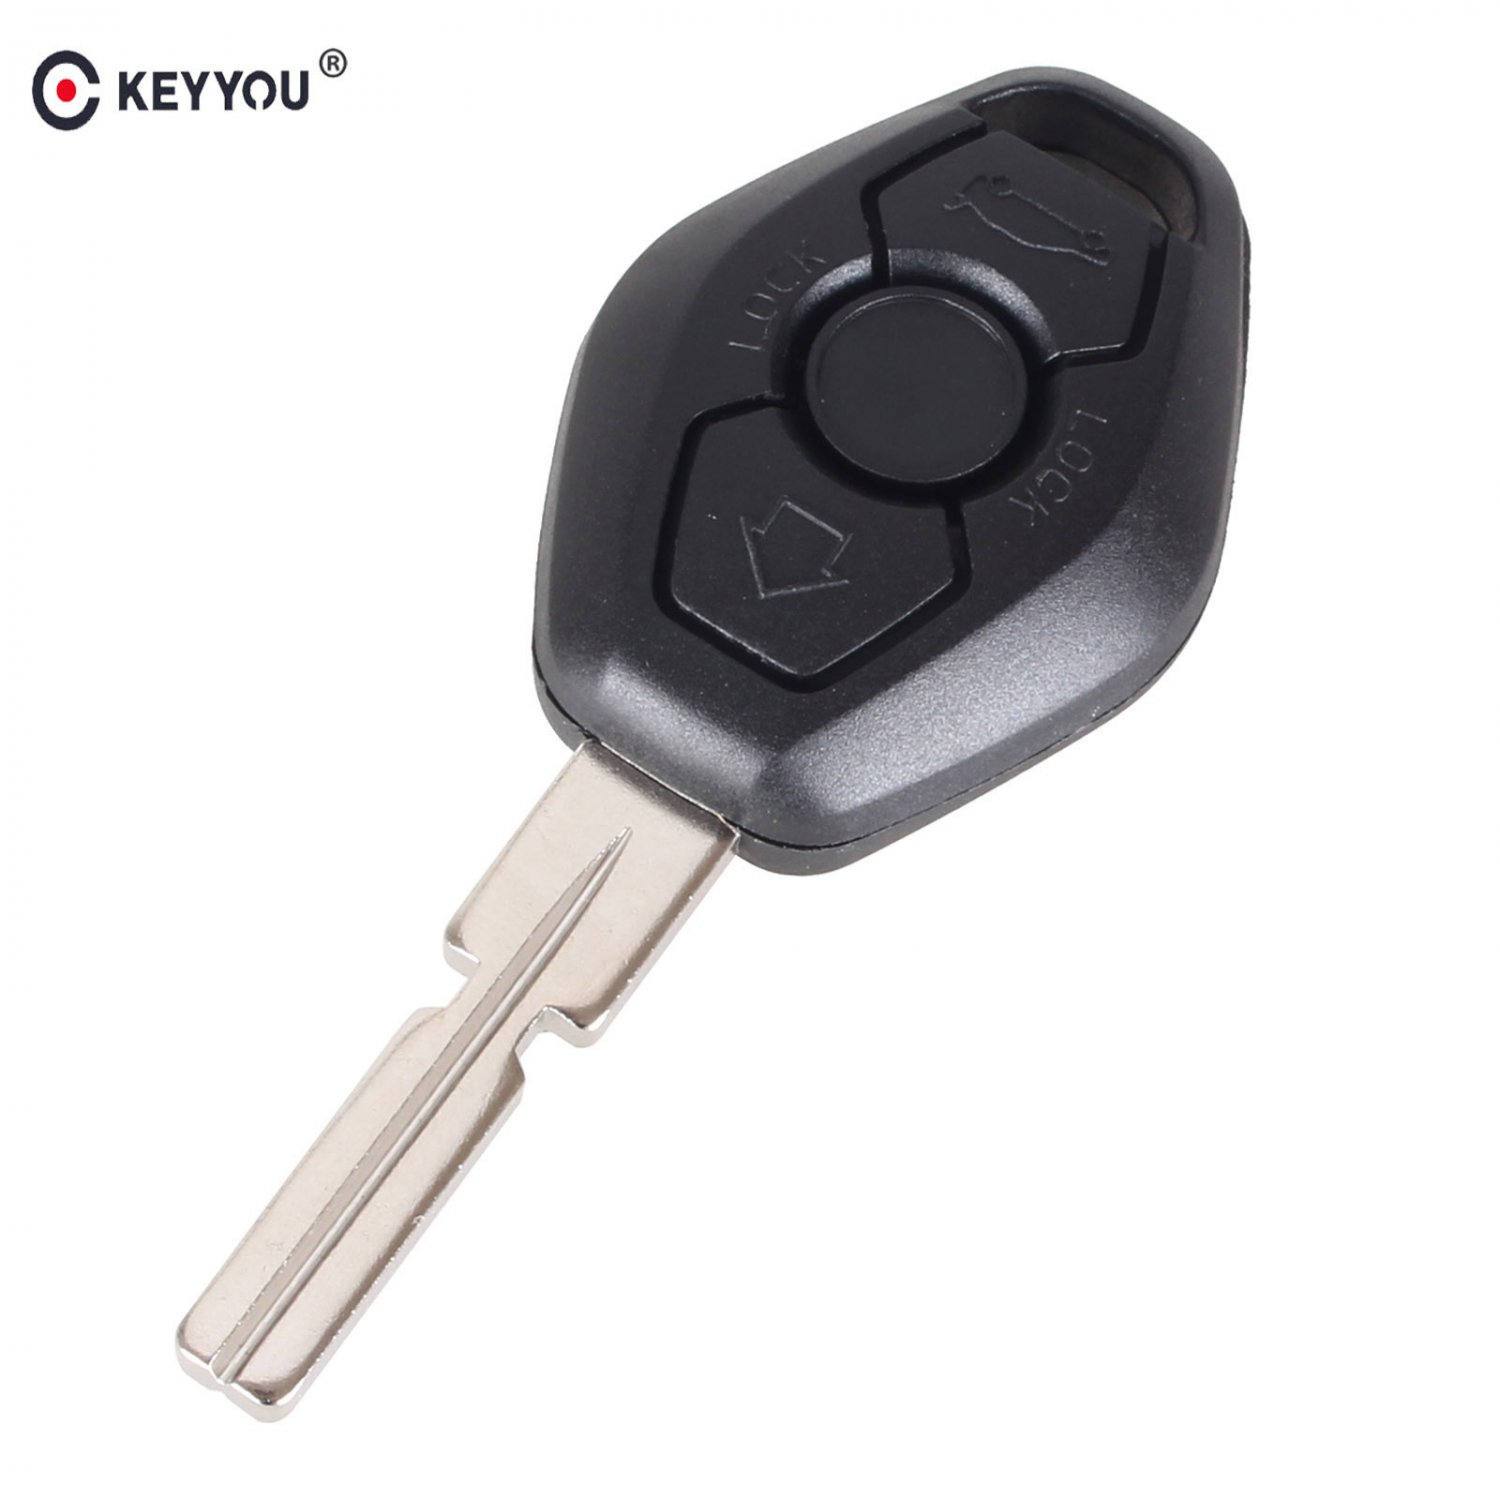 NEW 3 BUTTON  UNCUT KEY REMOTE SHELL CASE Fit FOR BMW 3 5 7 SERIES Z3 Z4 X3 X